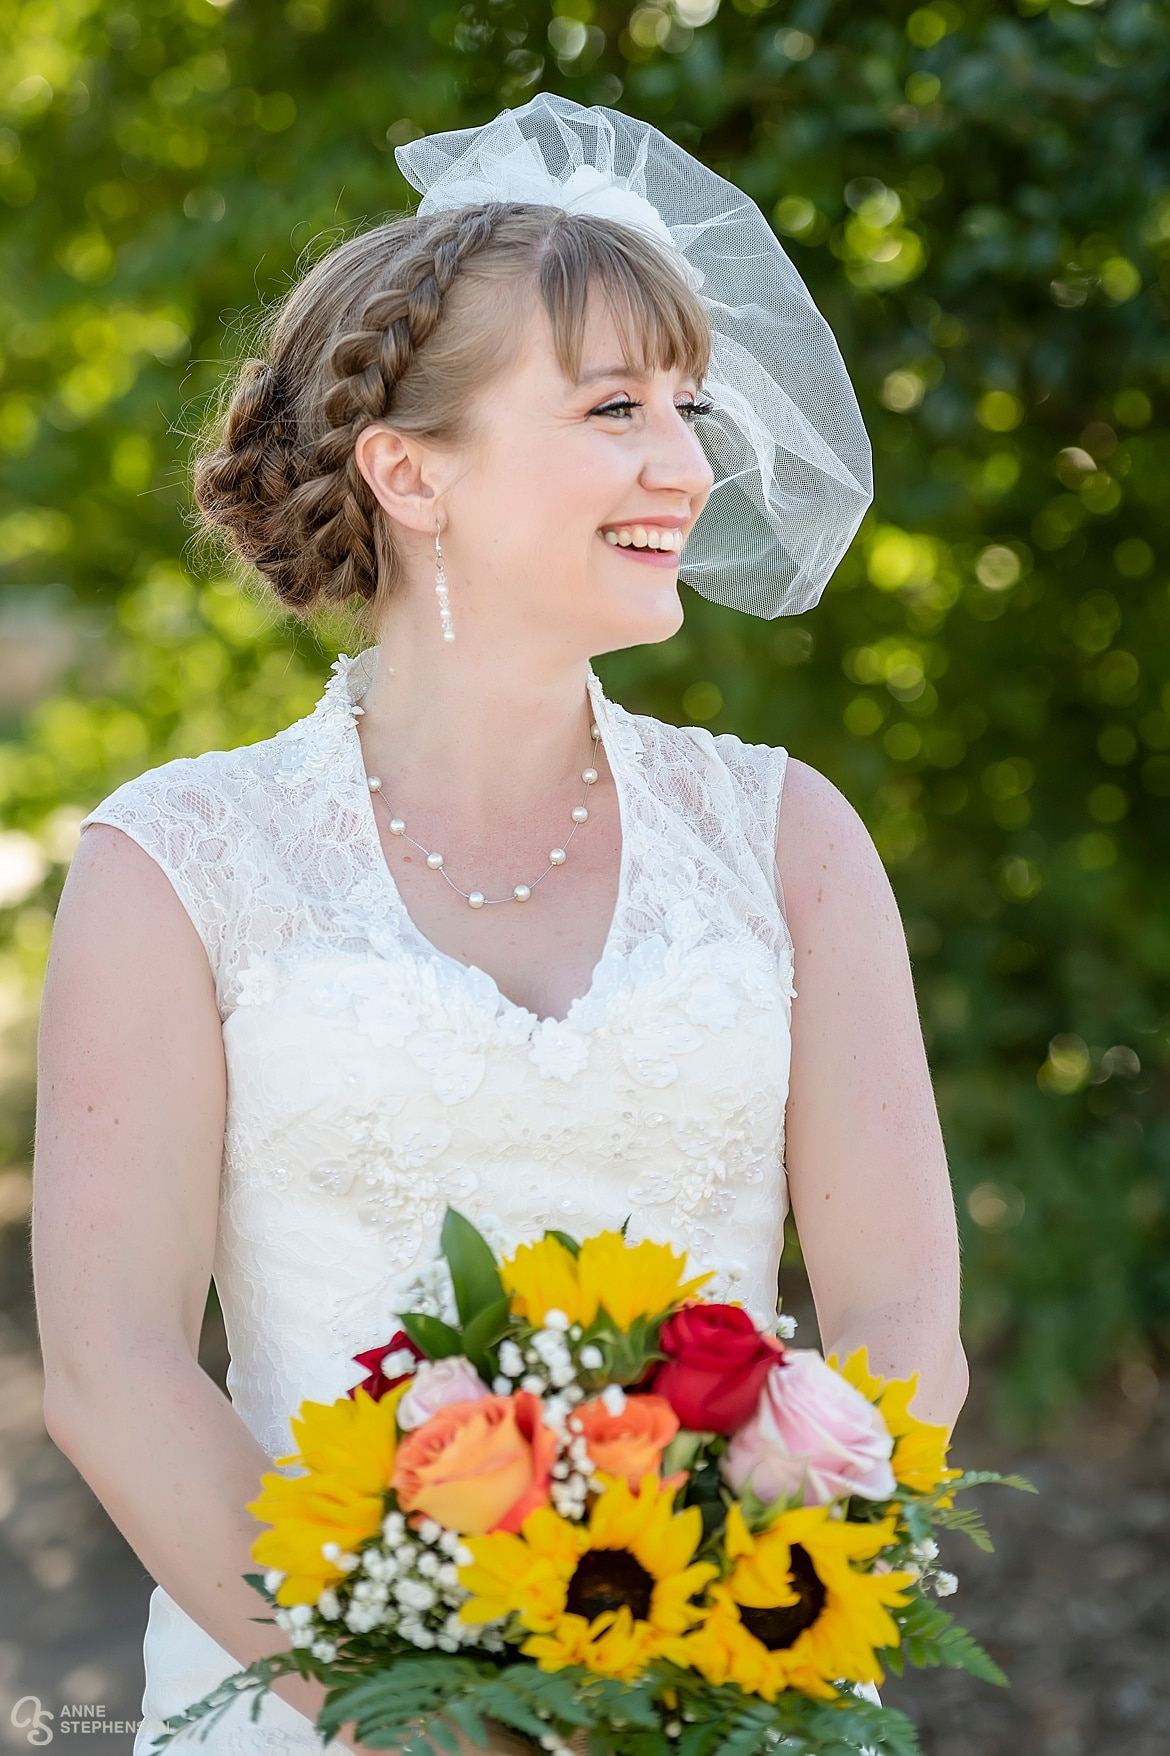 The bride's attire was inspired by the 1920s.